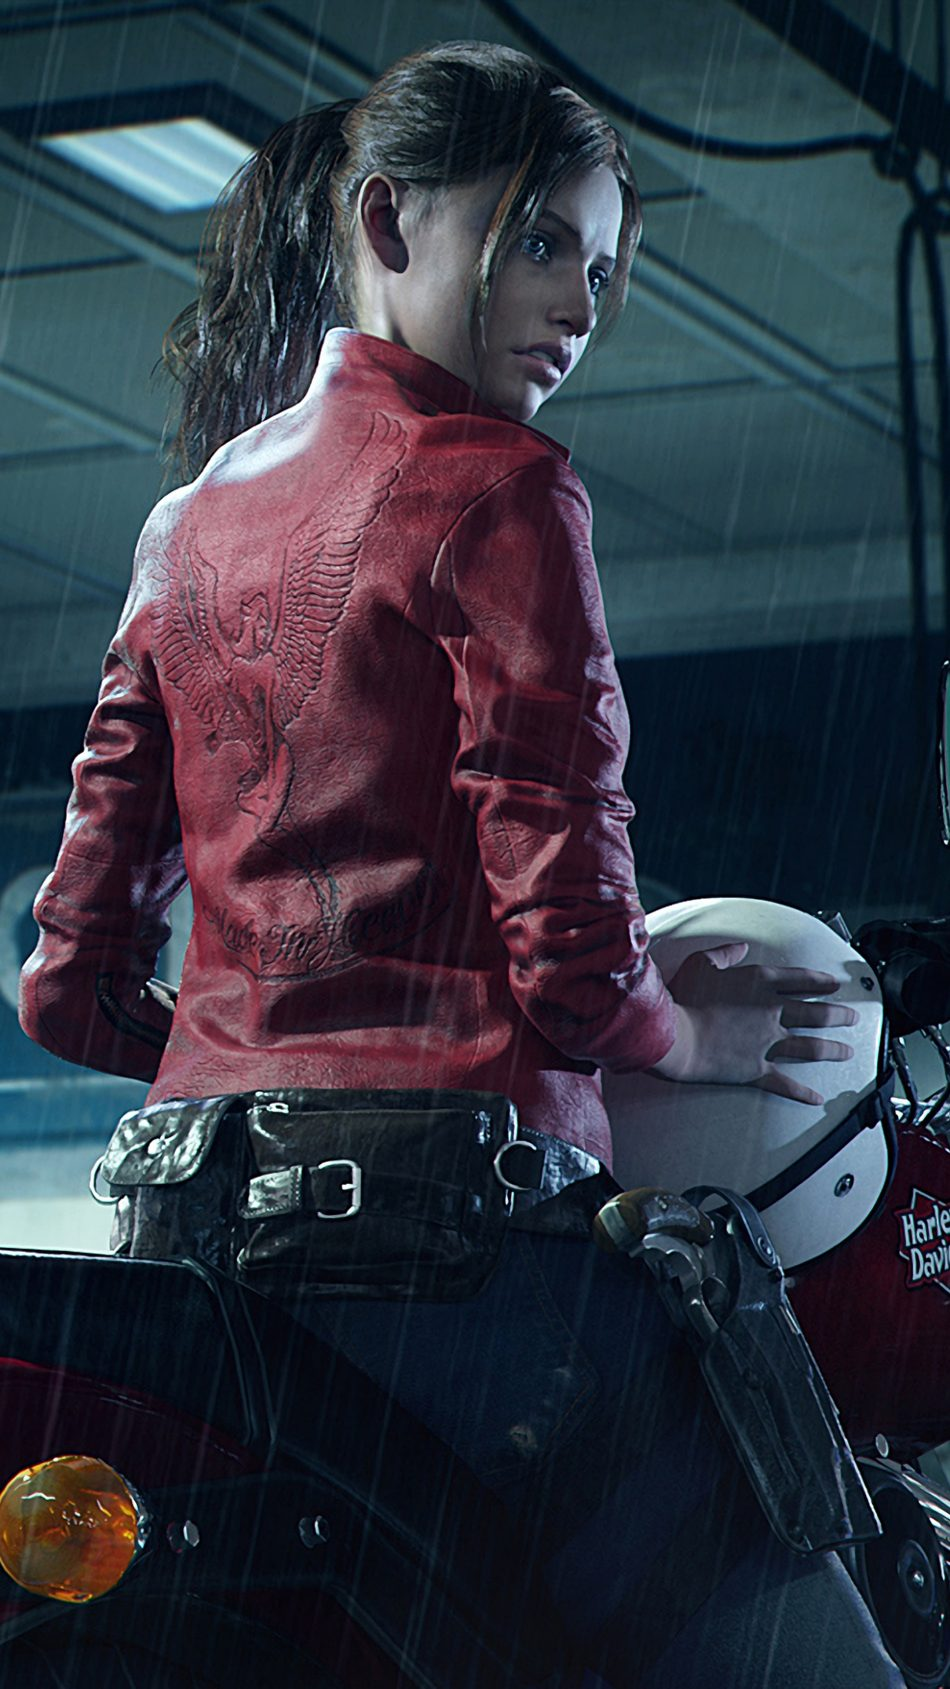 Claire Redfield Resident Evil 2 4K Ultra HD Mobile Wallpaper